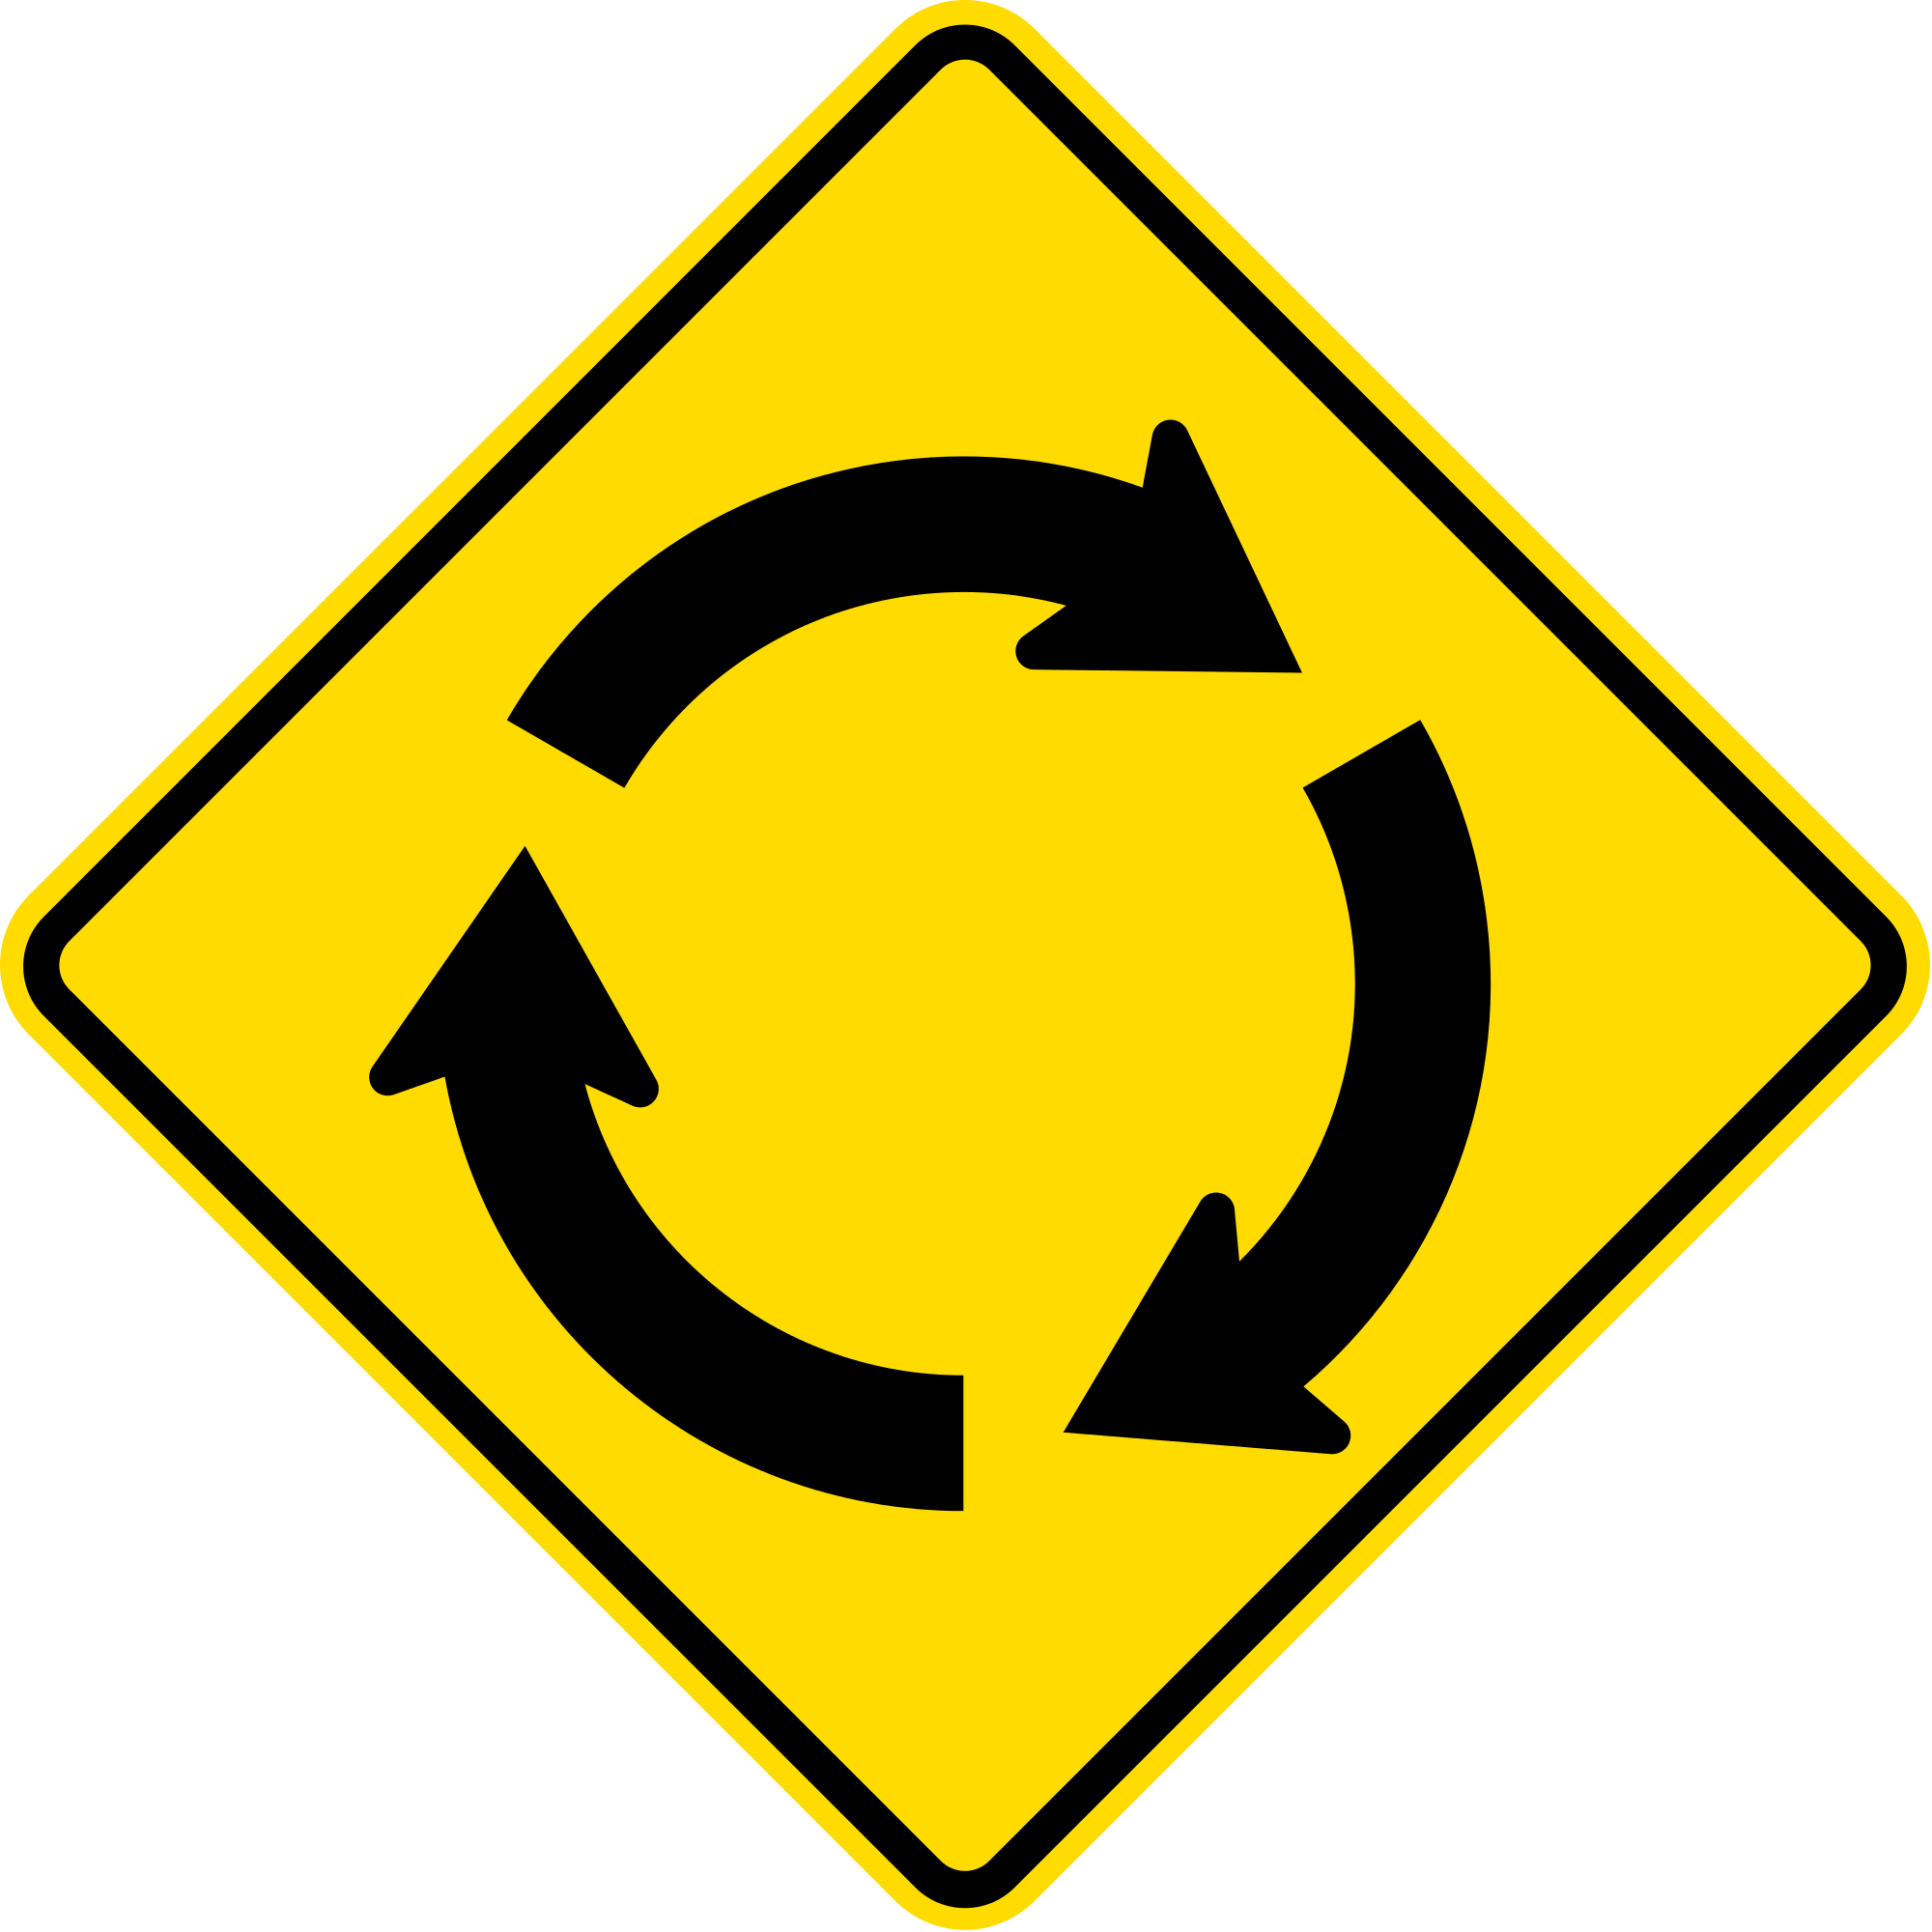 Road svg sign. File new zealand w